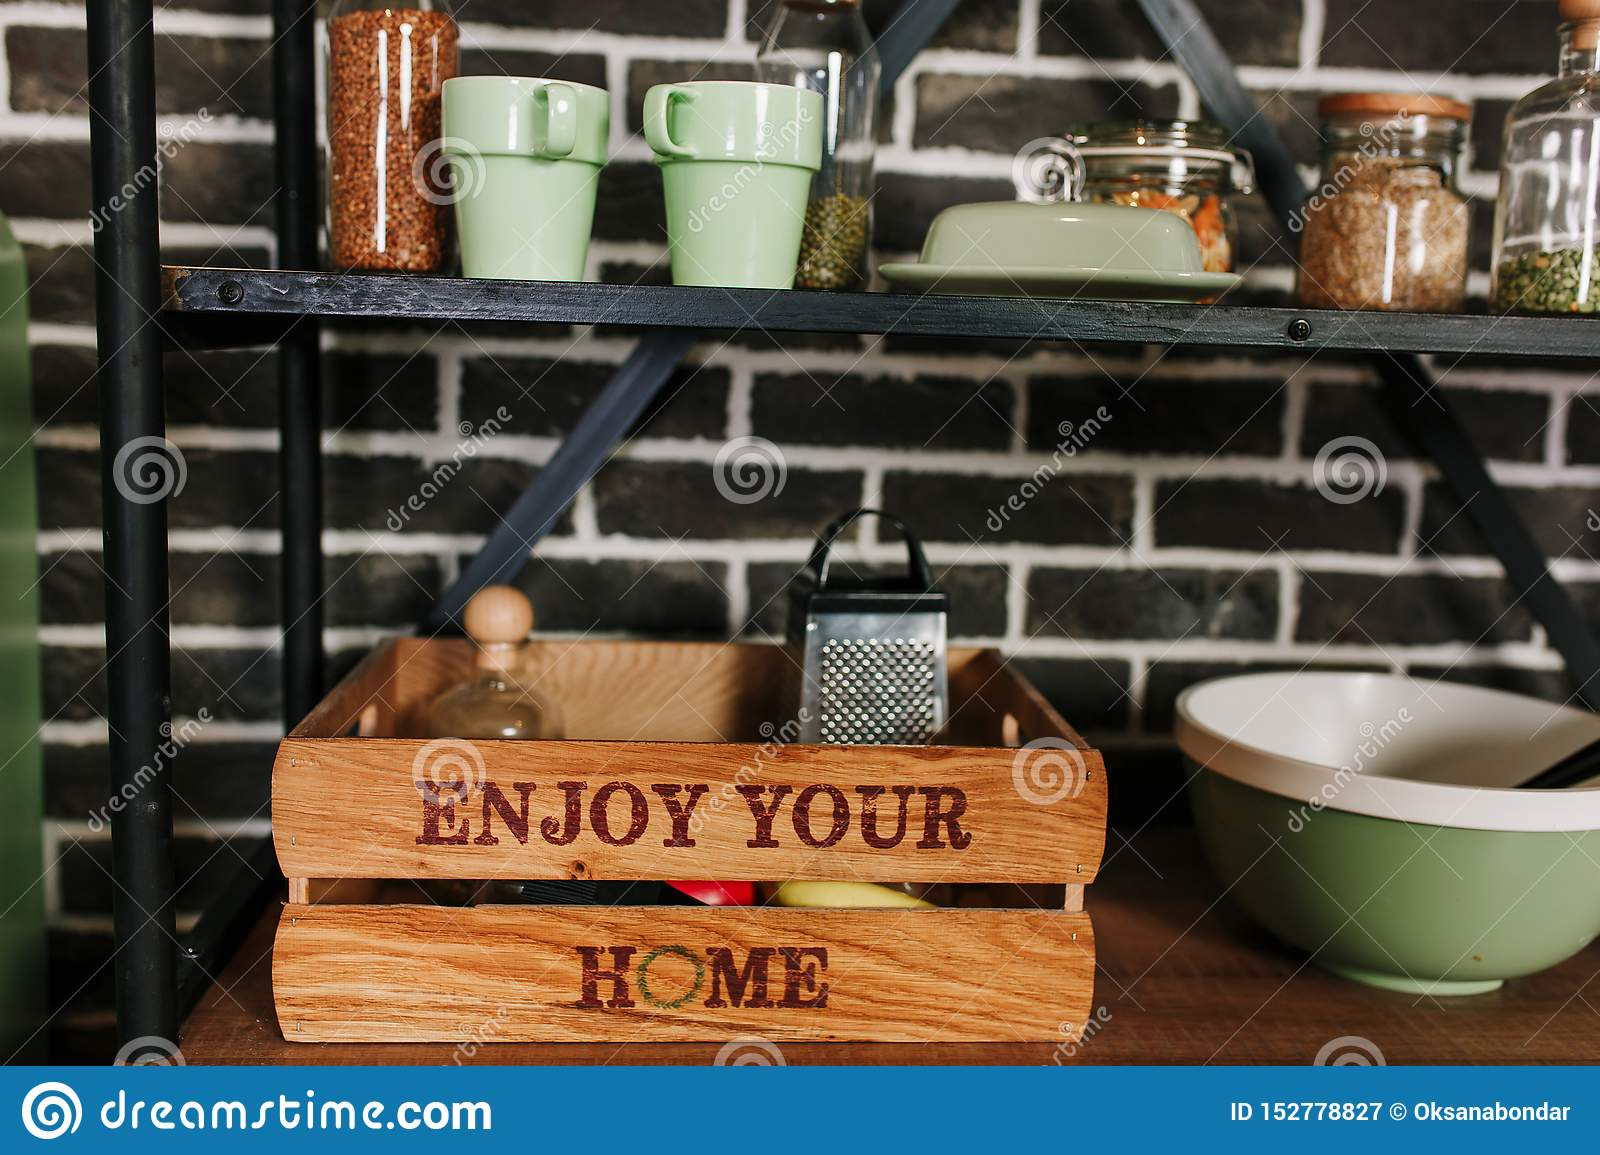 Wooden Home Decor And Storage Box At Modern Kitchen Kitchenware Keeping Stock Image Image Of Firewood Detail 152778827